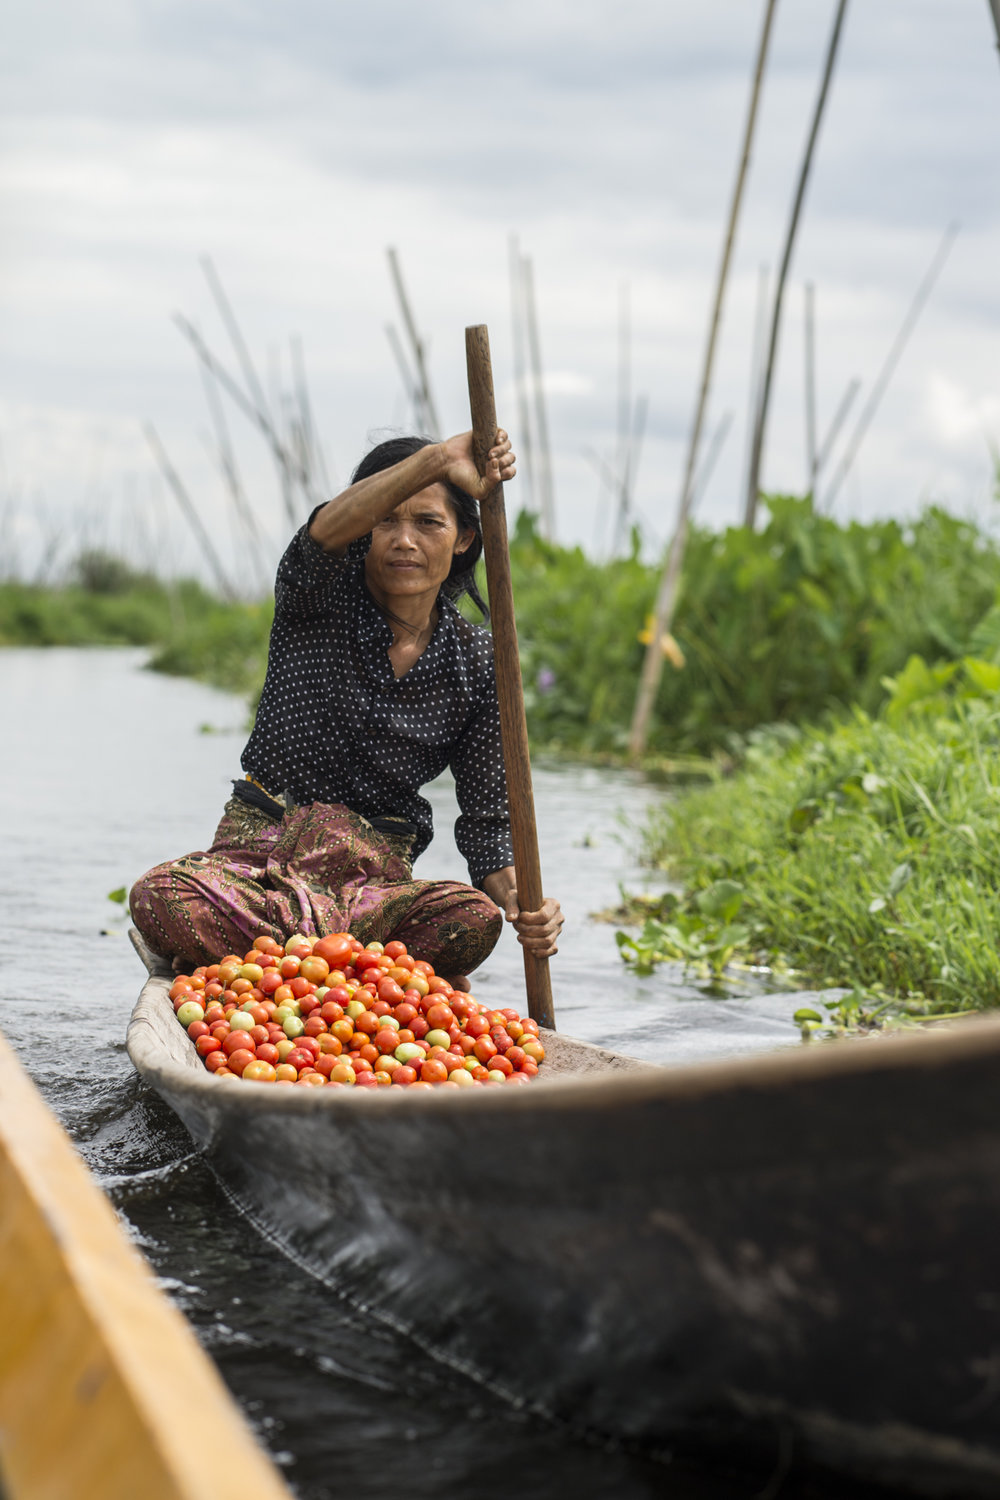 A burmese woman is bringing a batch of tomatoes to the market.  The tomatoes are grown on the surface of the lake, and also known as floating gardens.